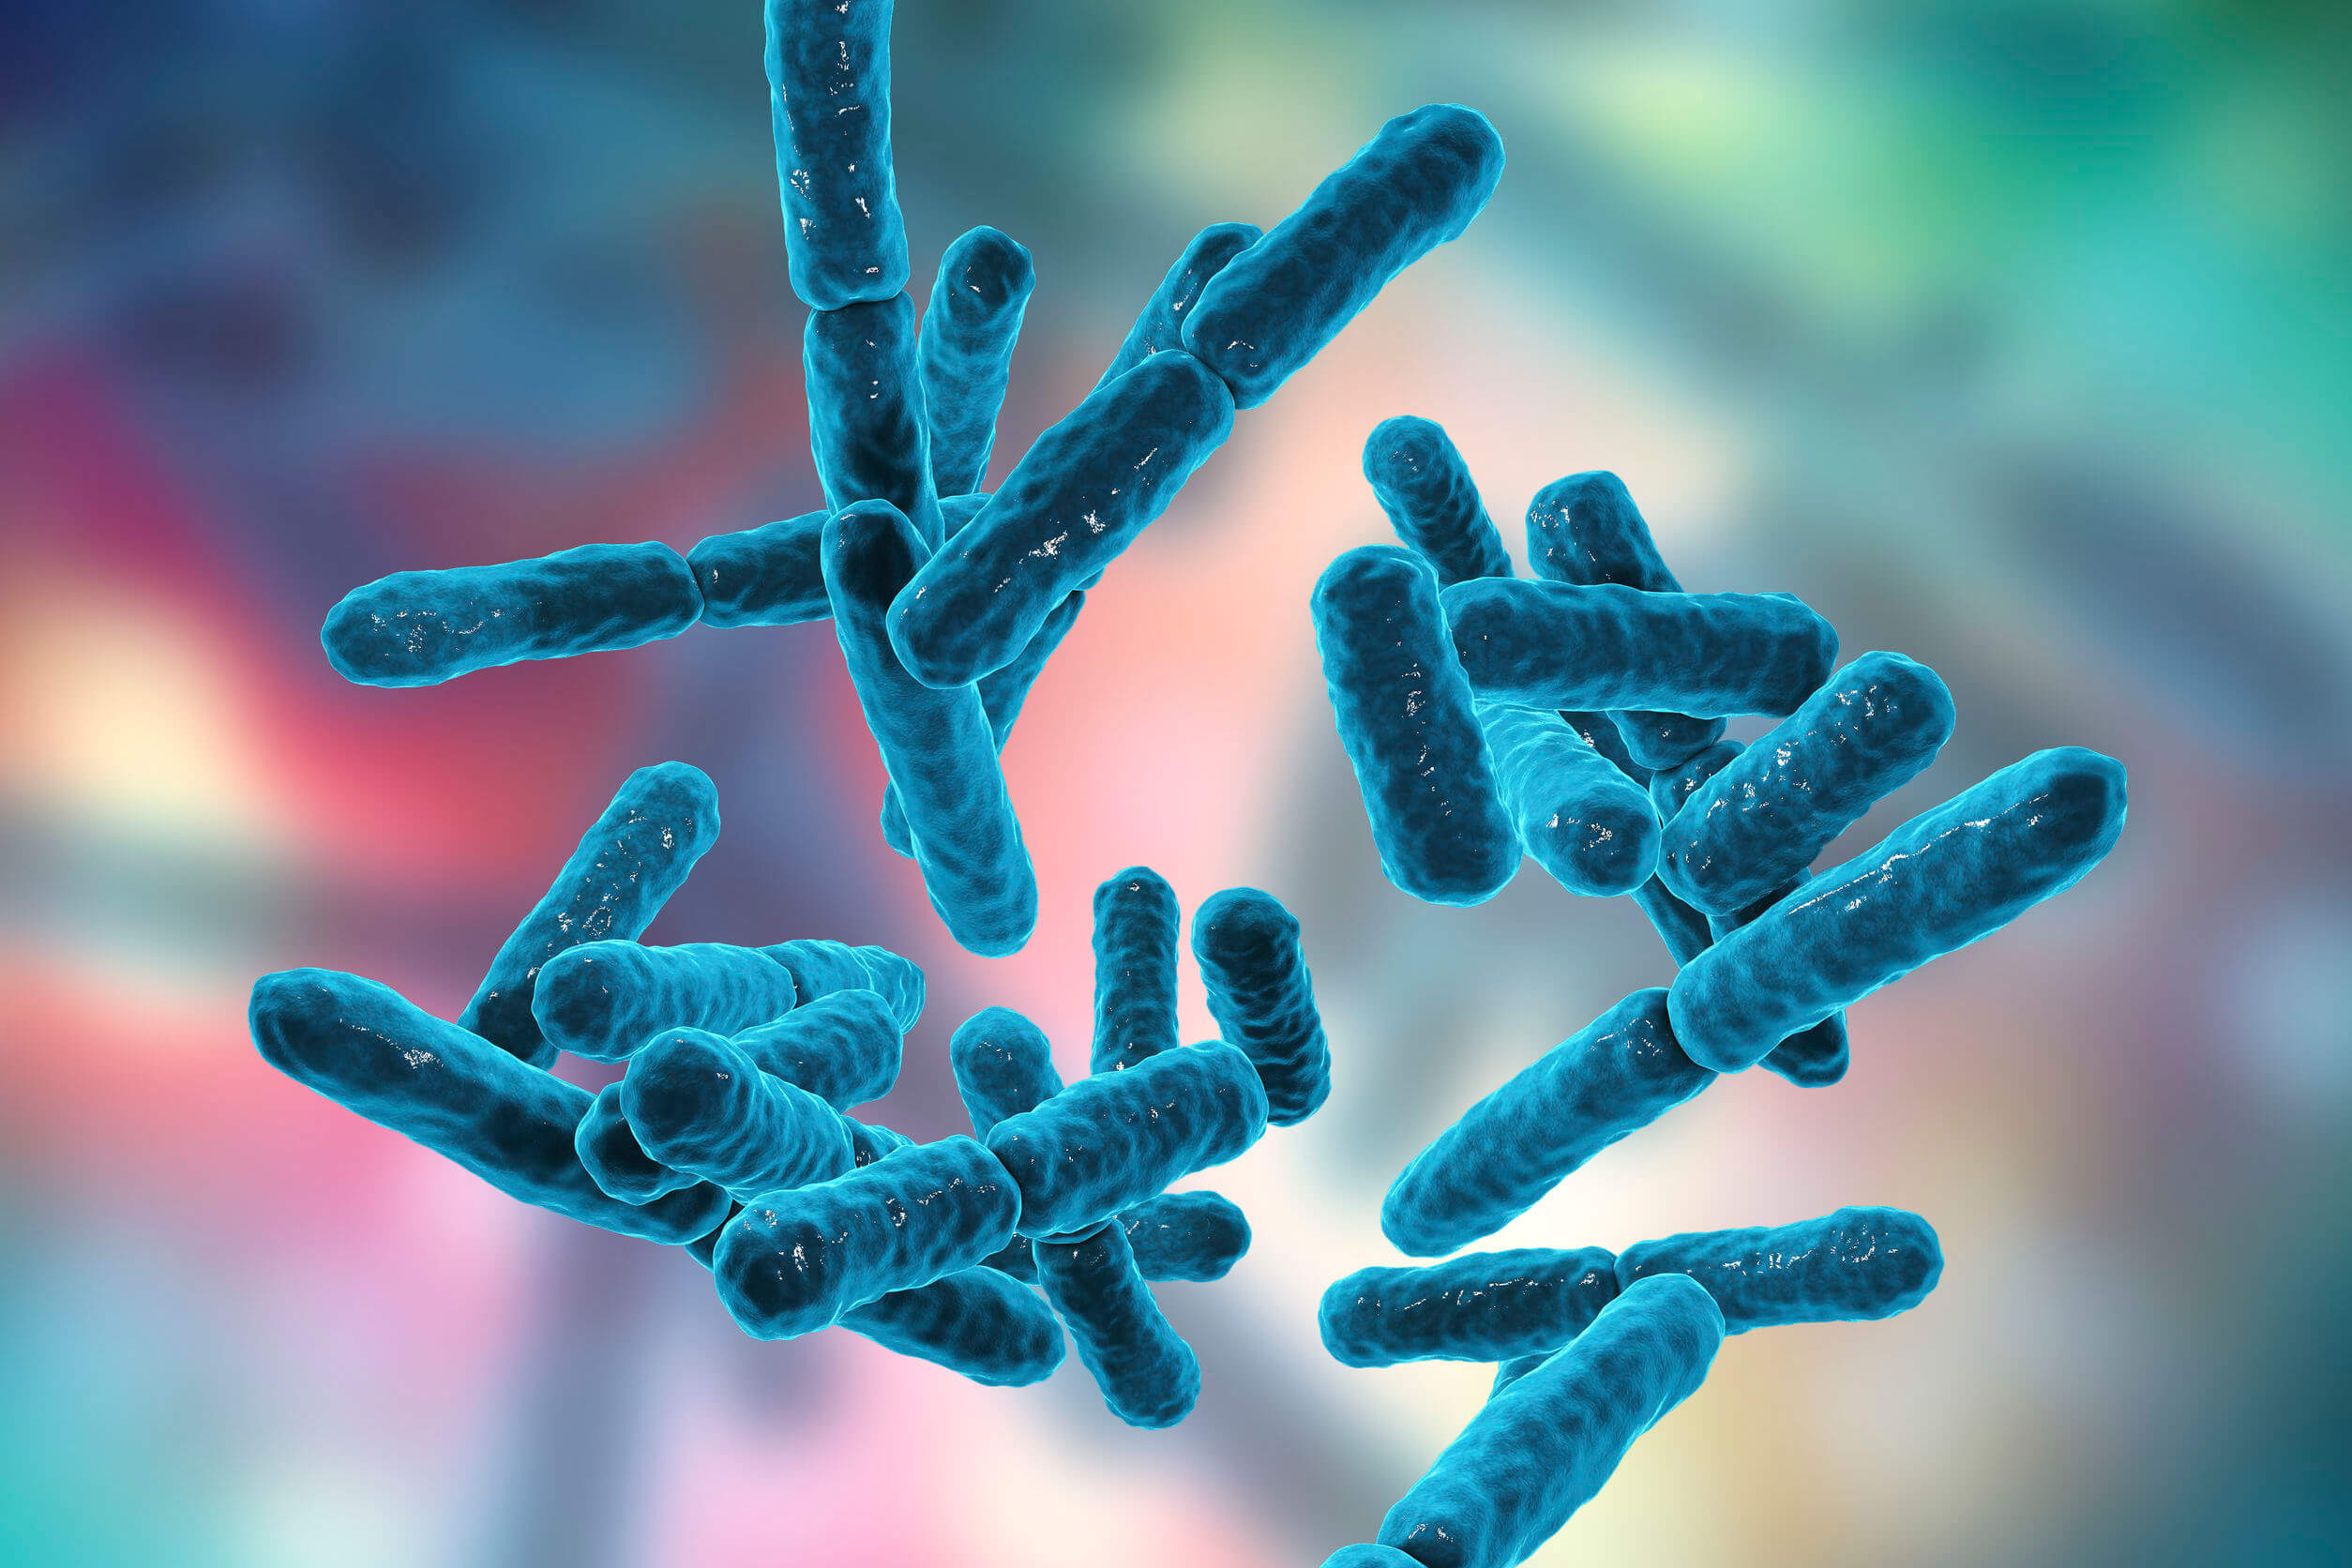 Microbiota protects against infections.